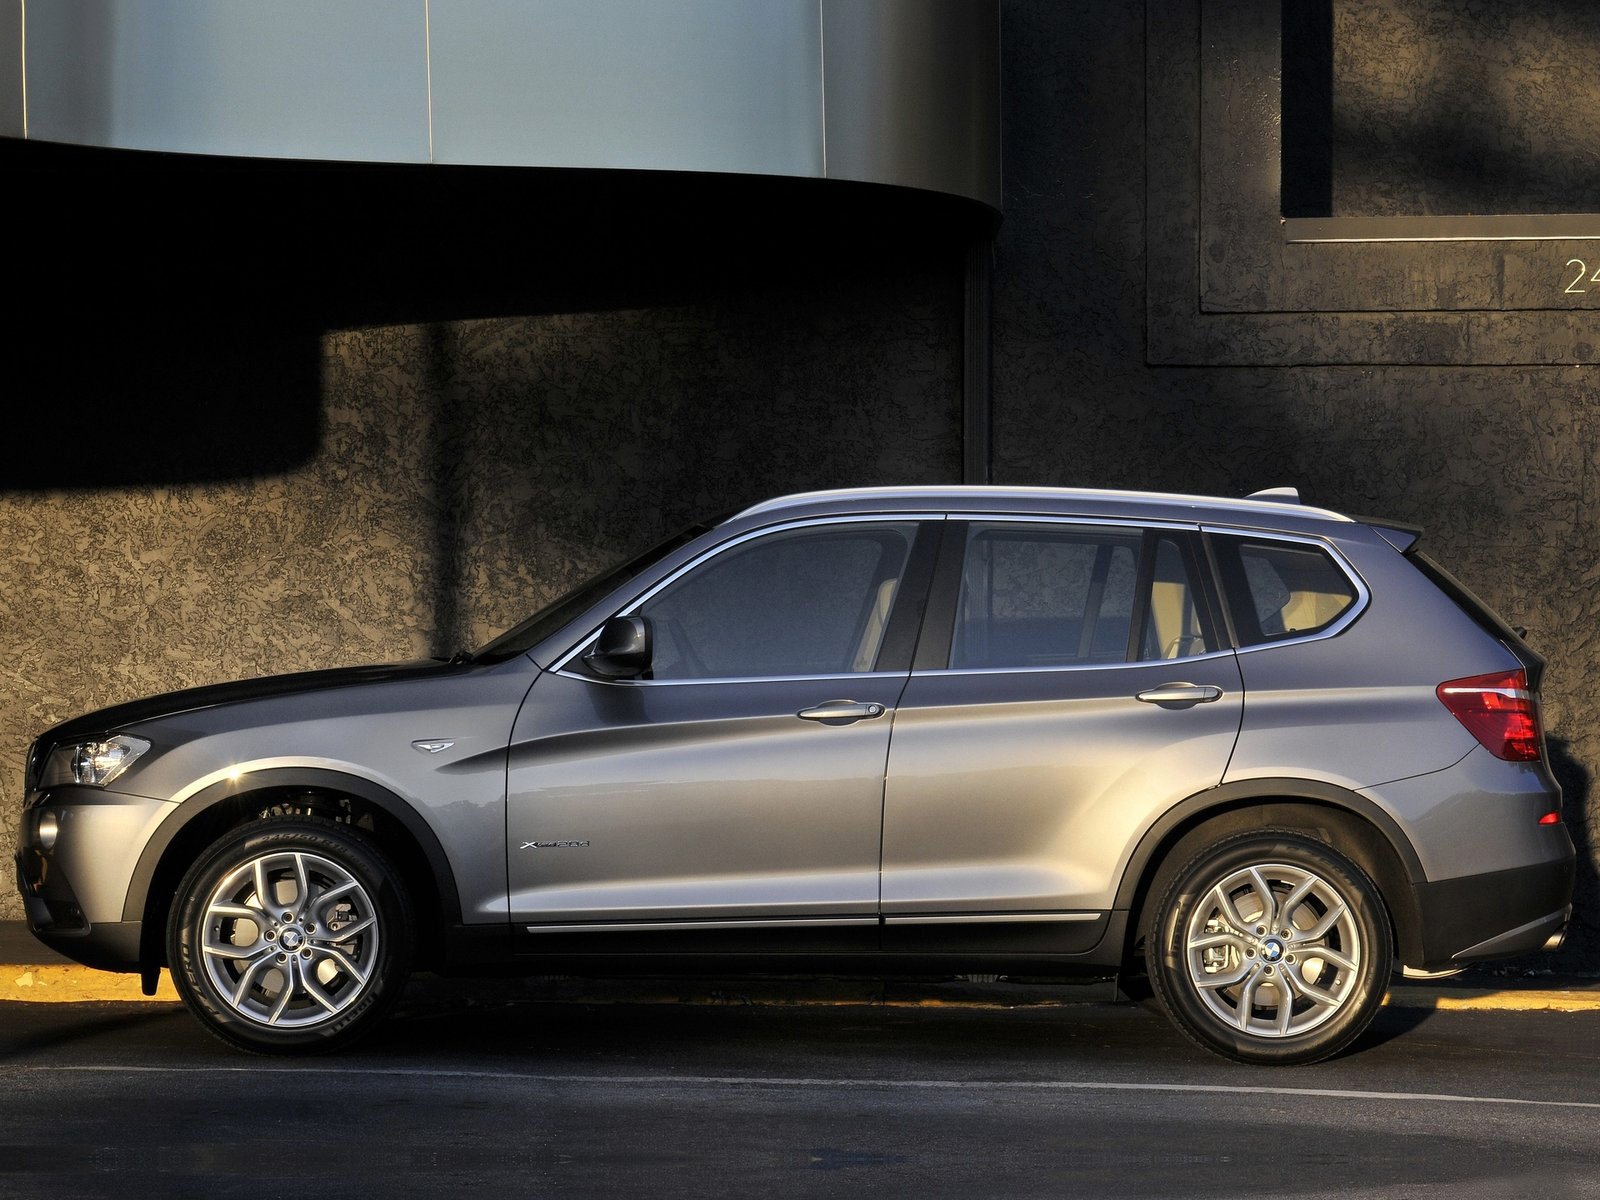 BMW X3 xDrive20d 2011 photo - 9